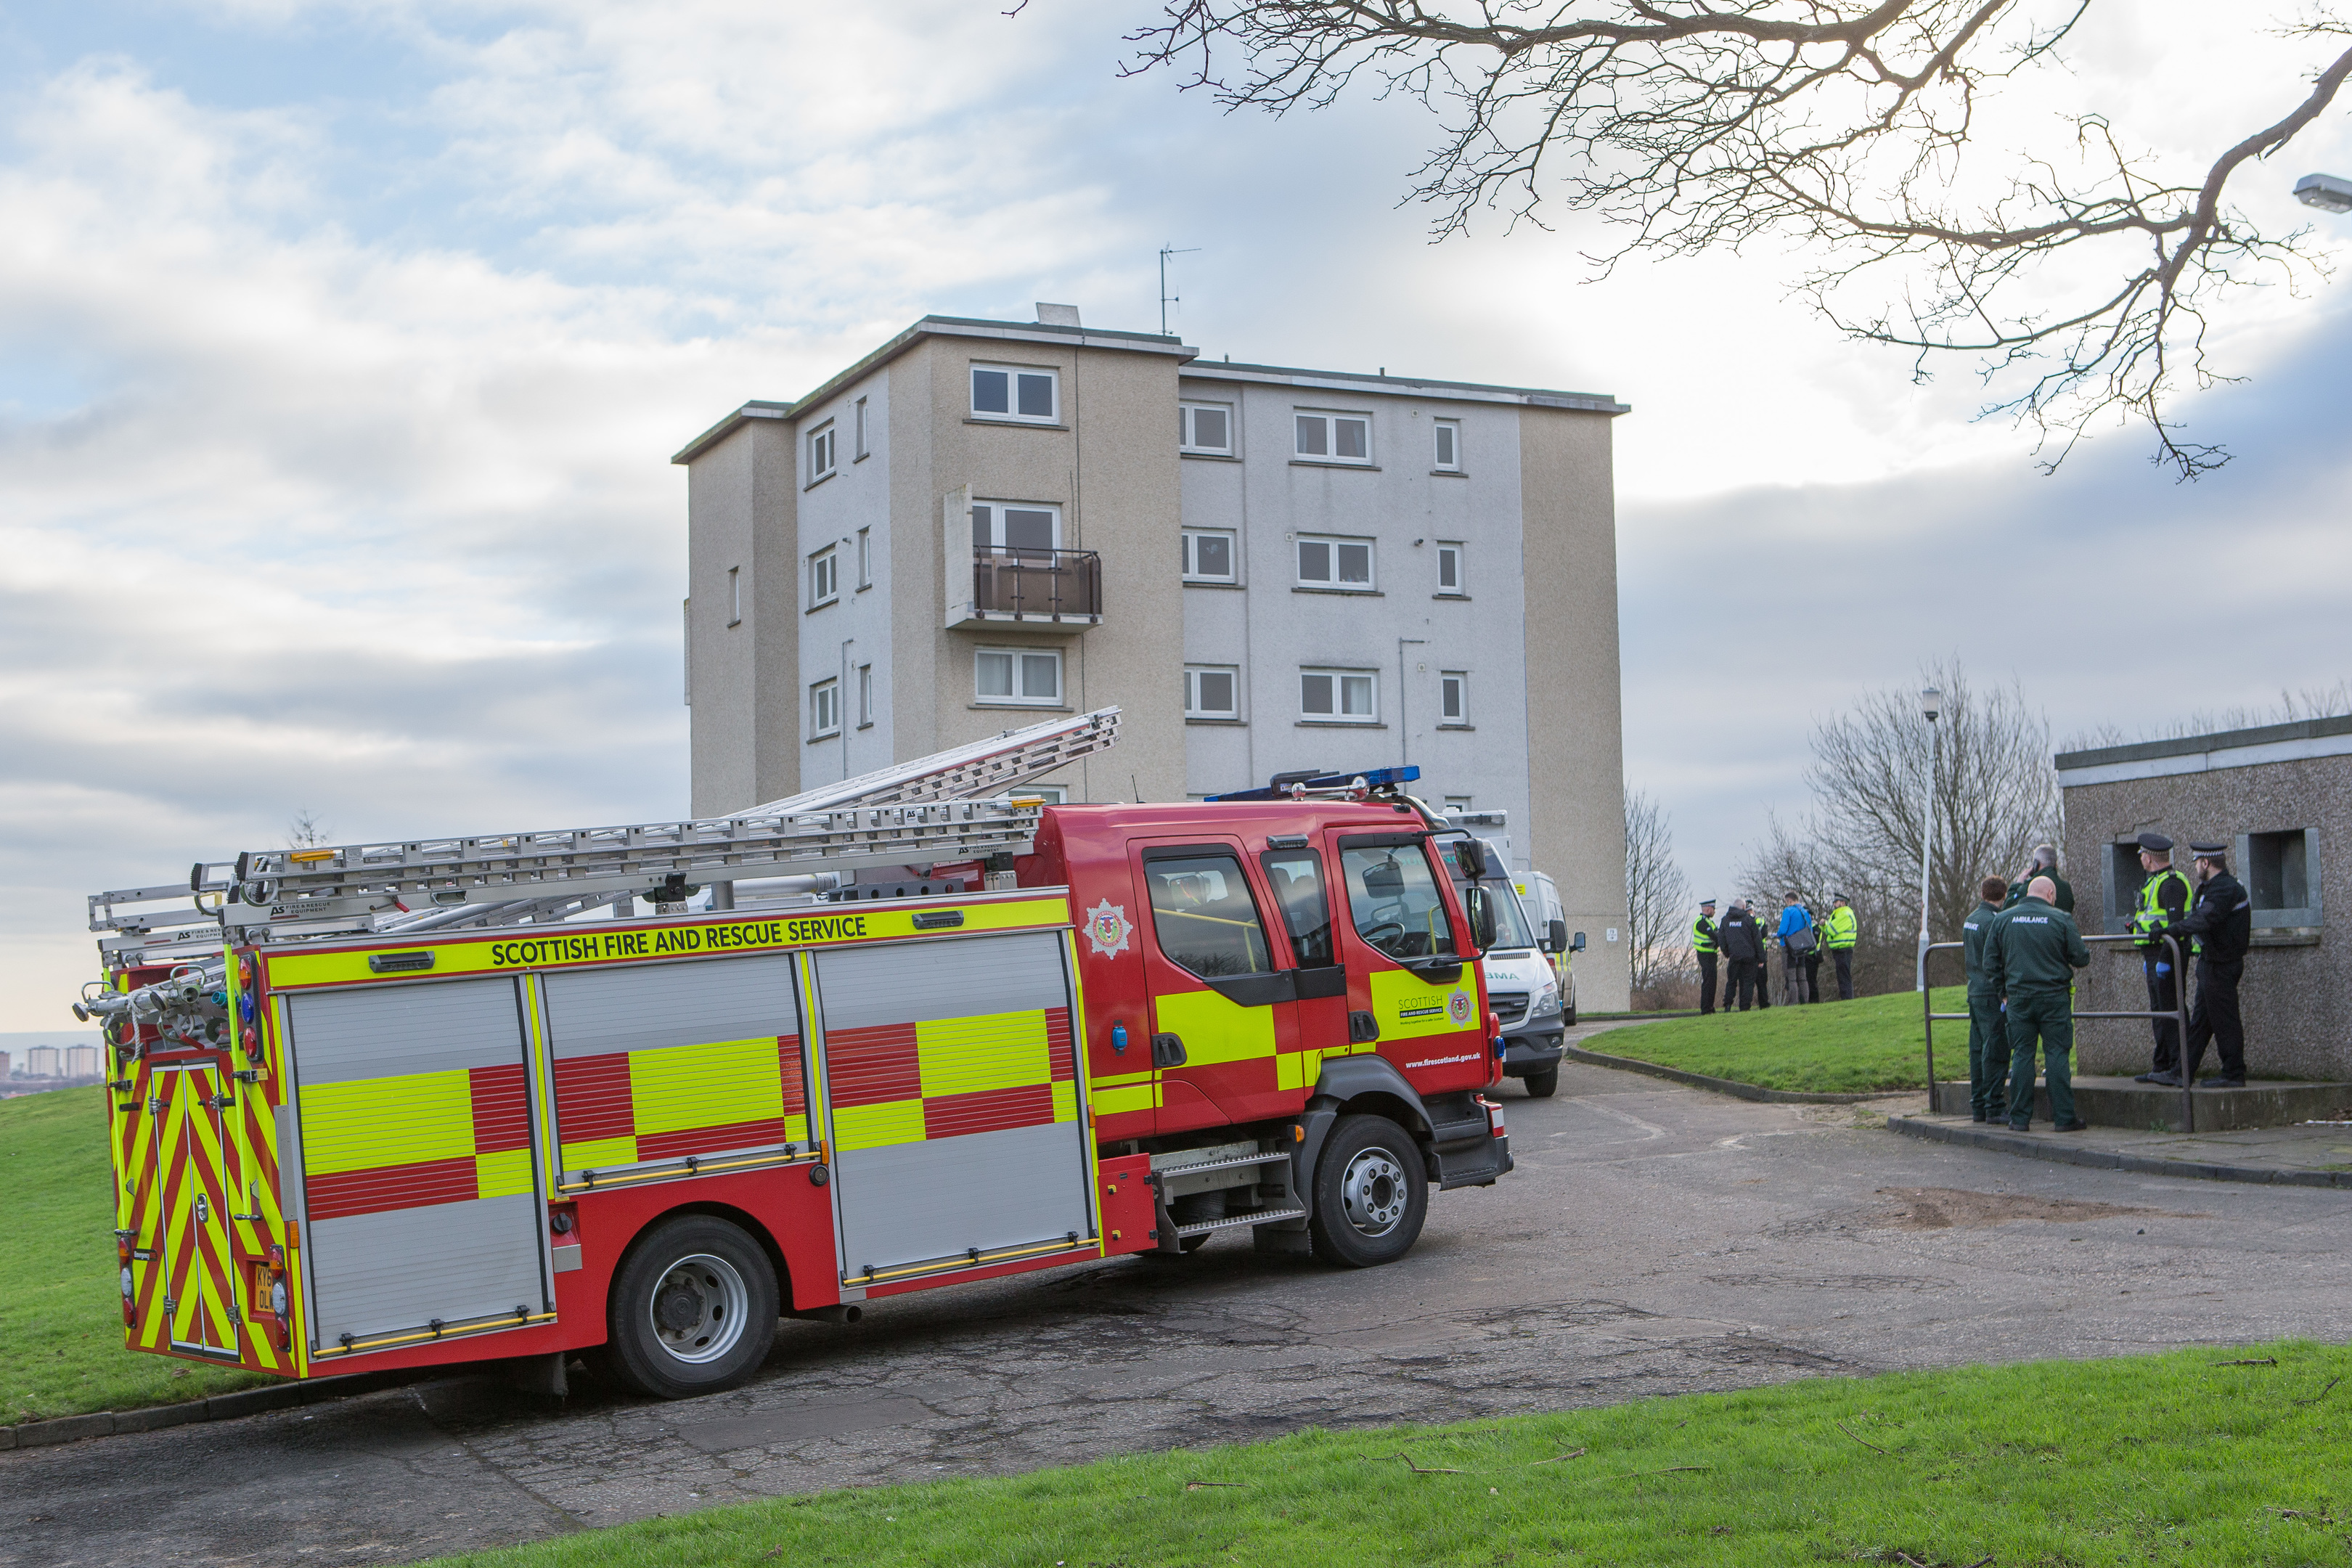 Police, ambulance and the fire service in attendance at the incident.